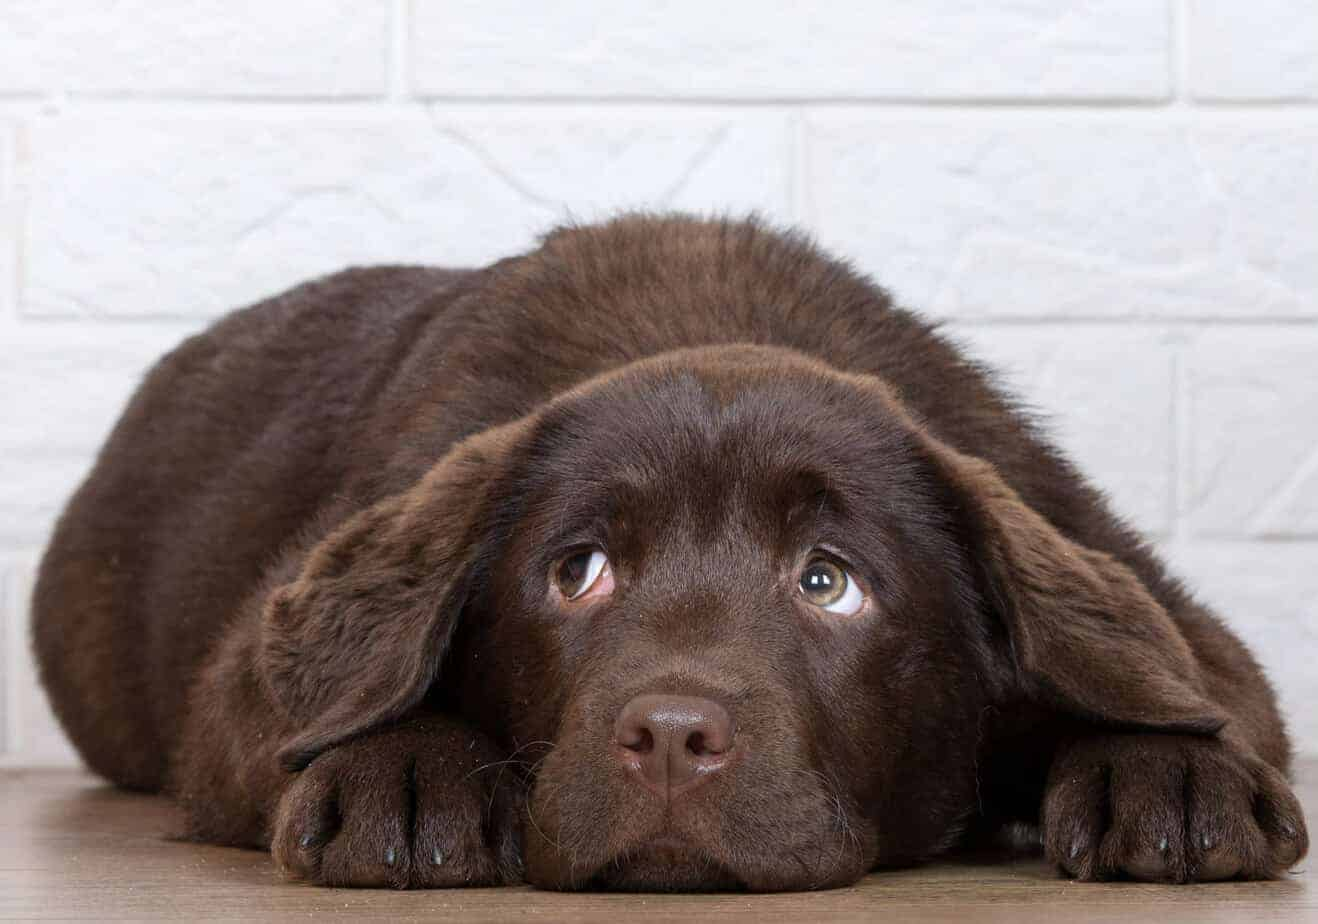 Chocolate Labrador shows signs of anxiety. Leaving dogs home alone for an extended period can cause separation anxiety.